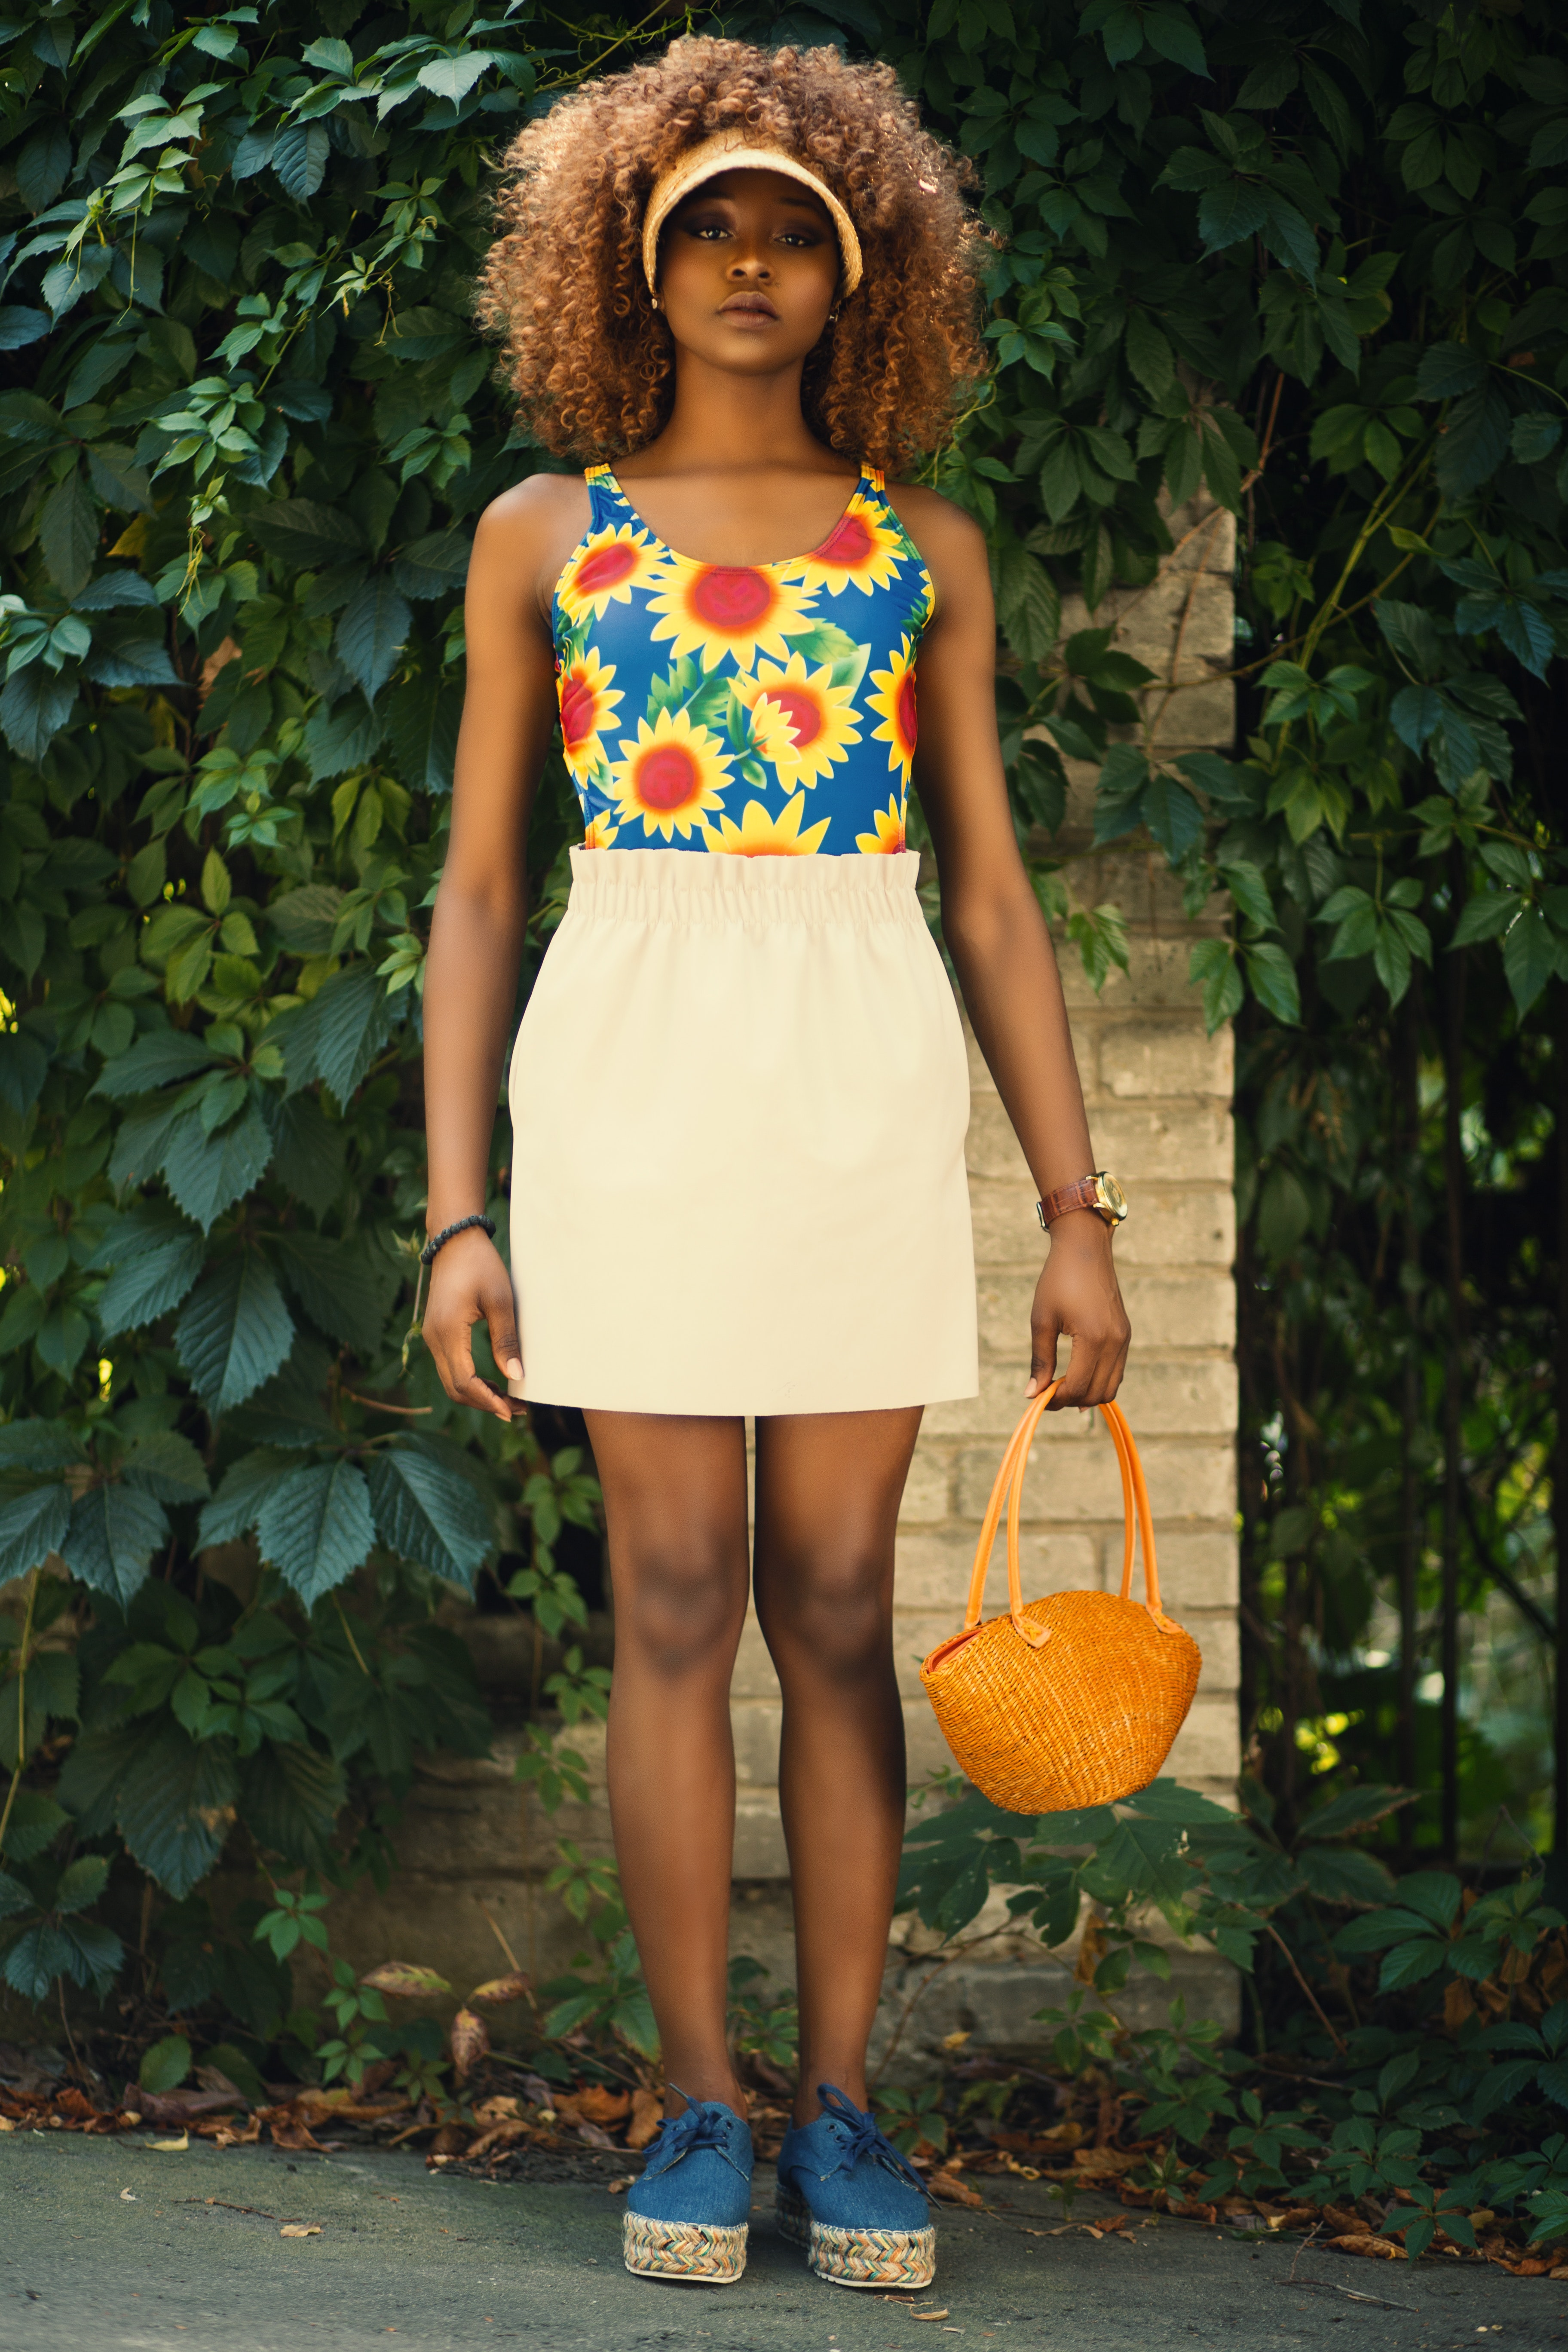 Woman wearing yellow and blue floral crop top photo